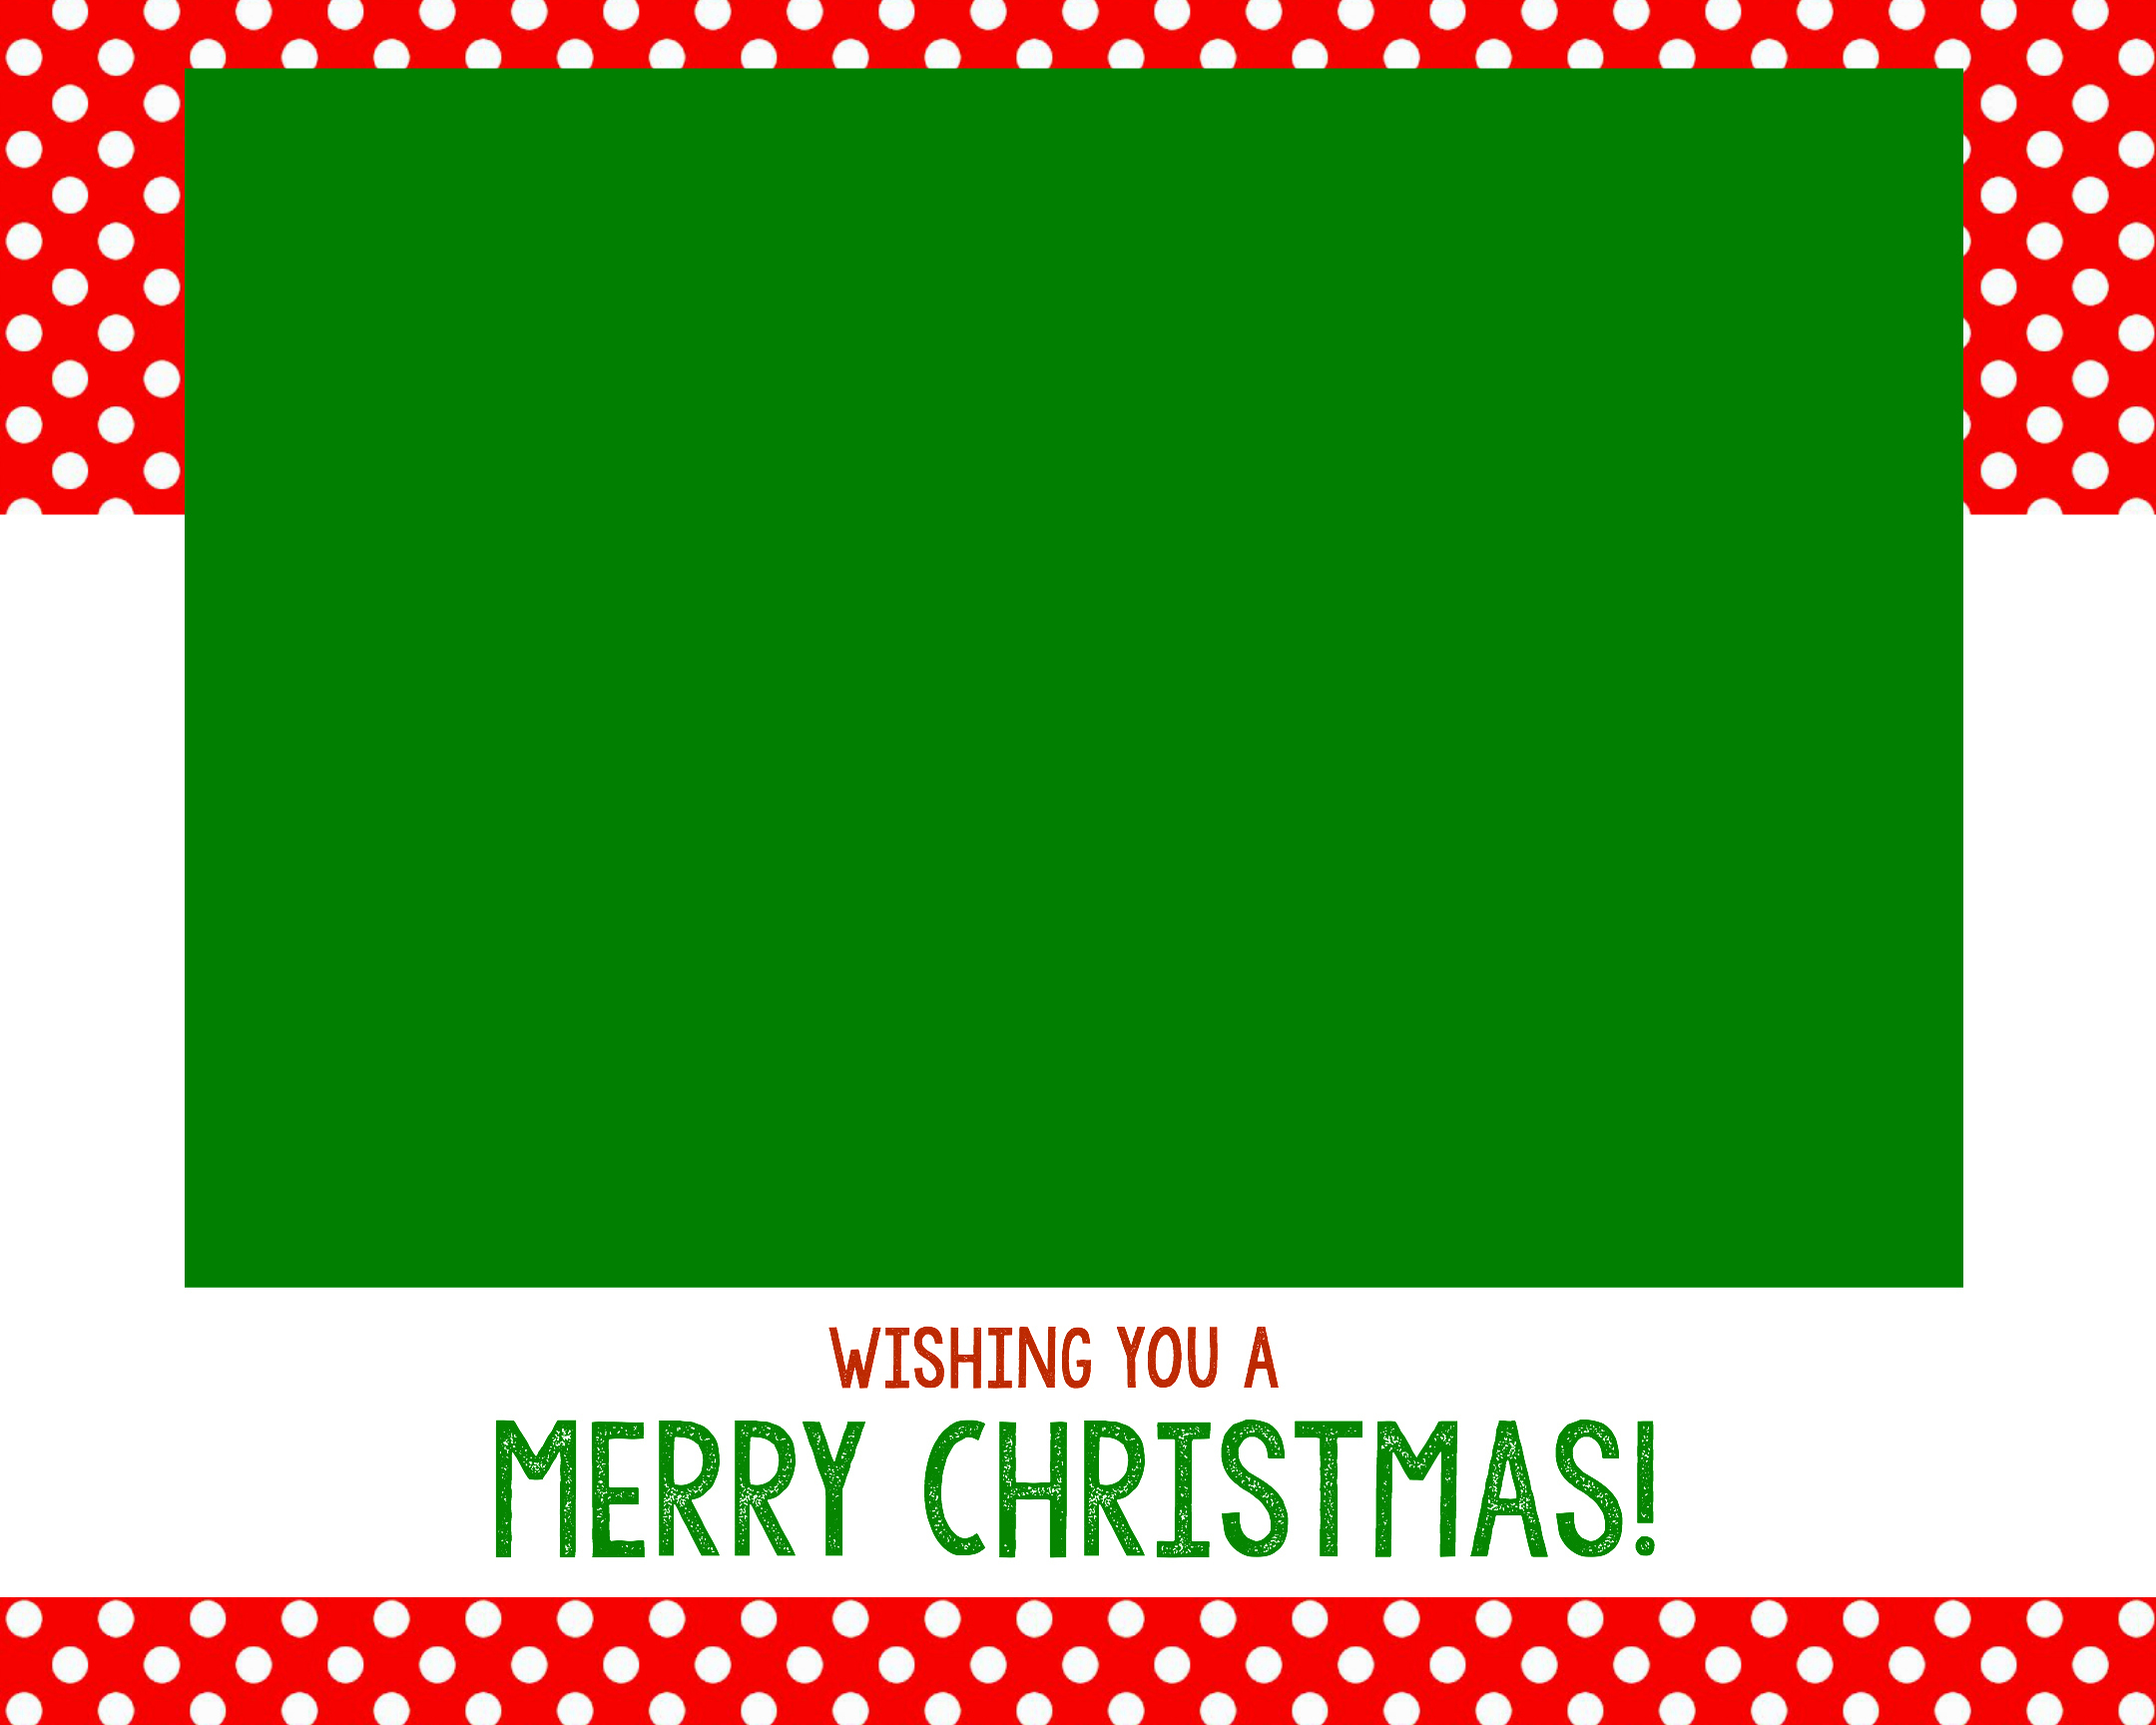 Free Christmas Card Templates - Crazy Little Projects - Free Online Printable Christmas Cards